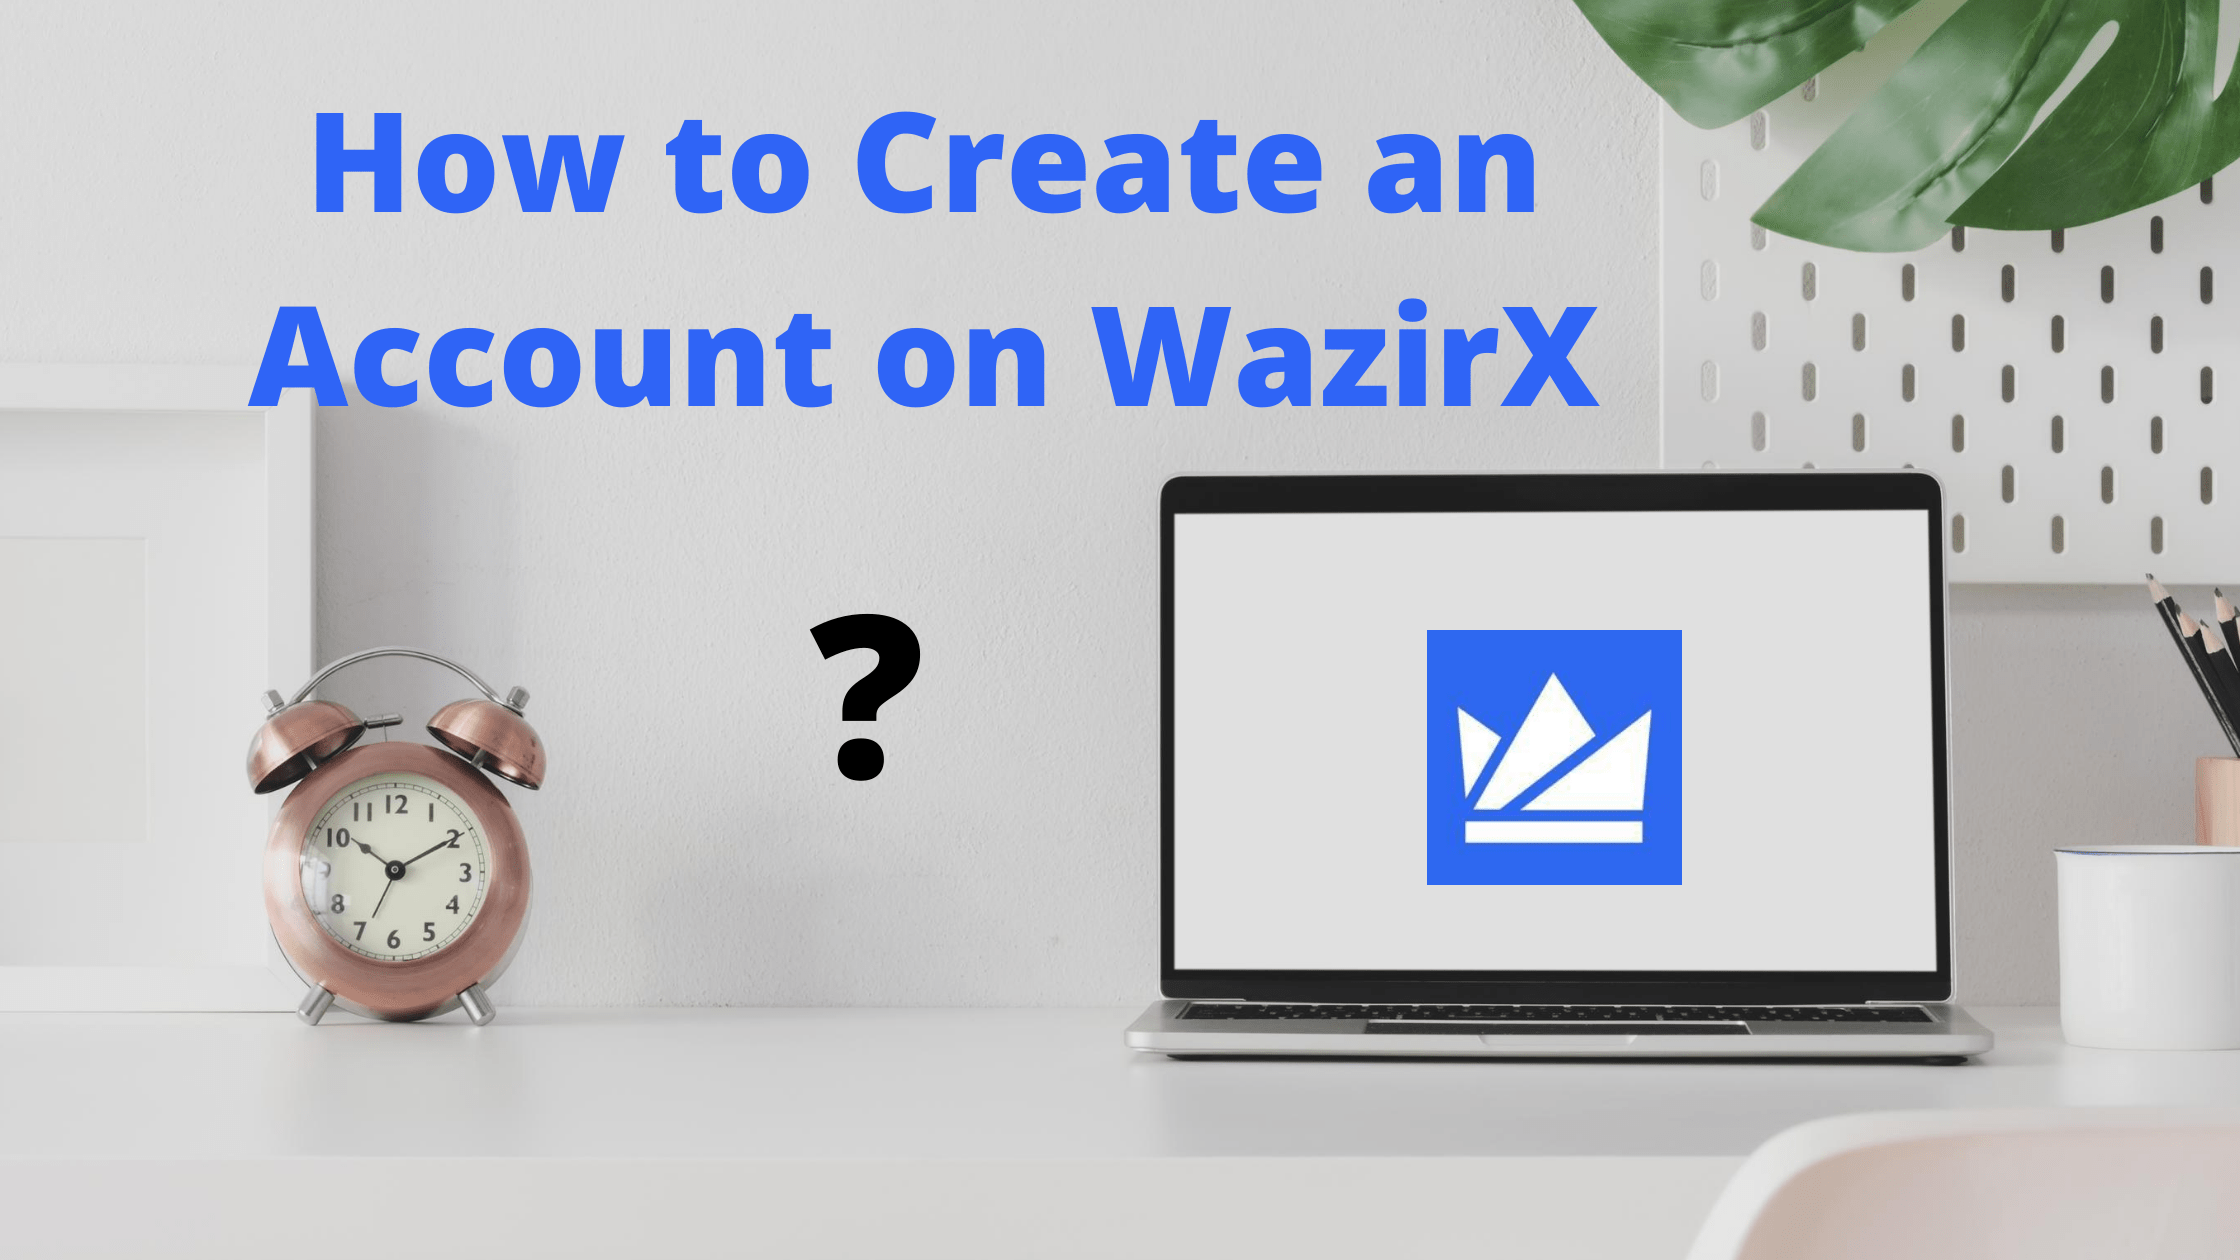 Create an Account on WazirX